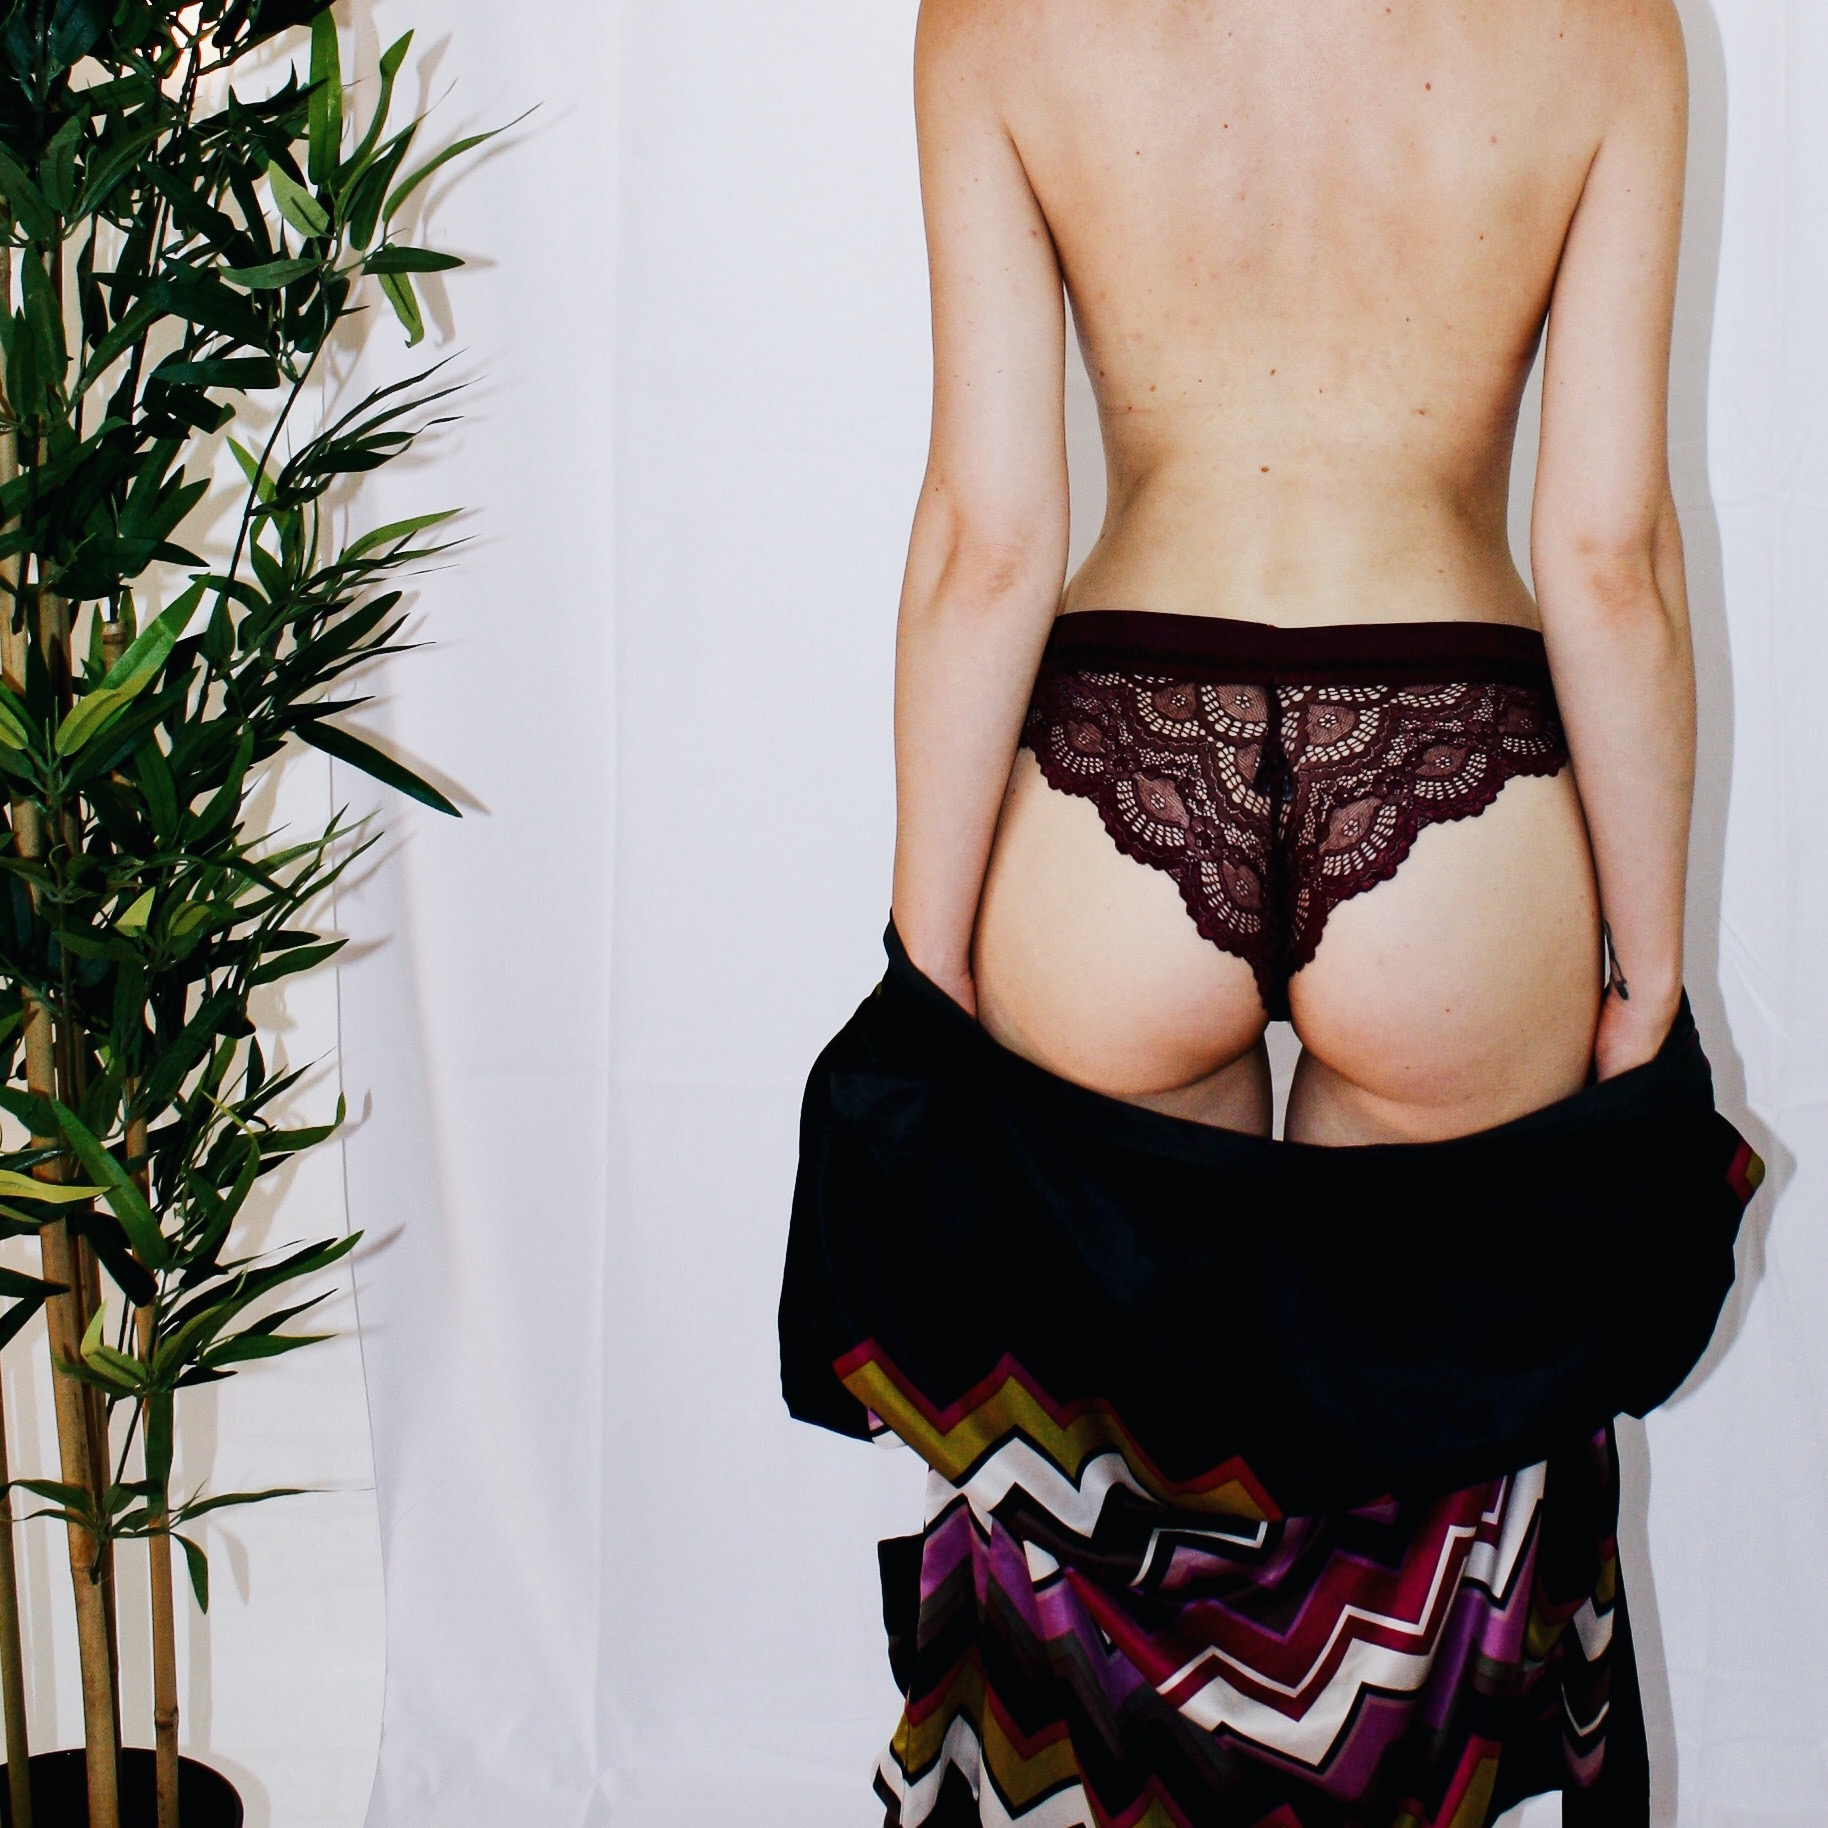 bootay bag review blogger subscription box panties lingerie 6